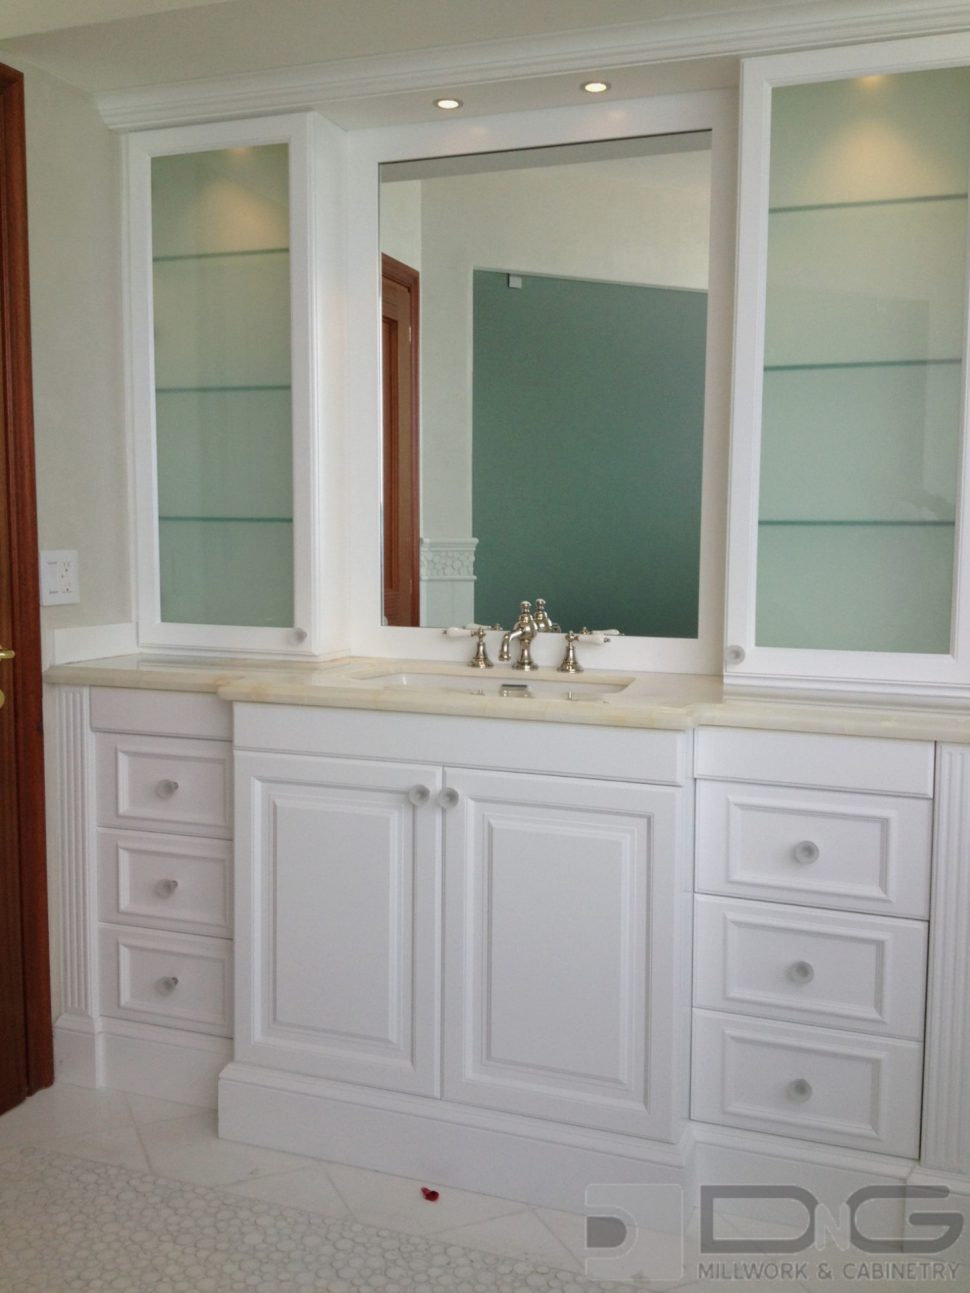 Amazing Bathroom Vanity : Bathroom Corner Vanity Best Place Find Vanities regarding Bathroom Vanity Storage